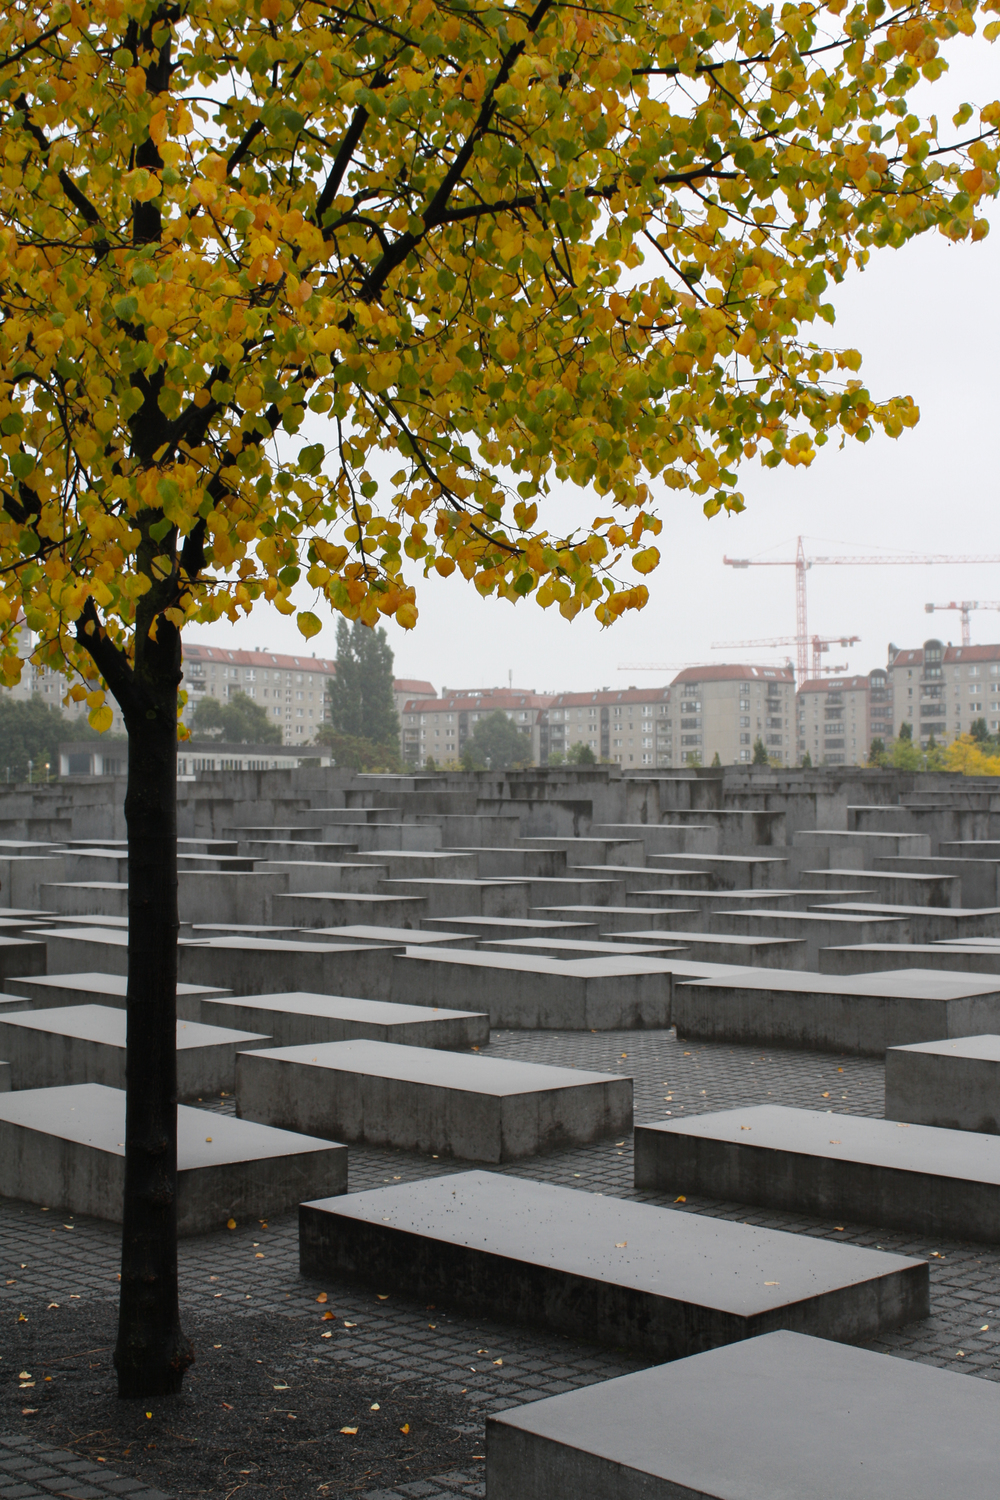 The holocaust memorial, a series of coffin-sized concrete blocks of varying heights.